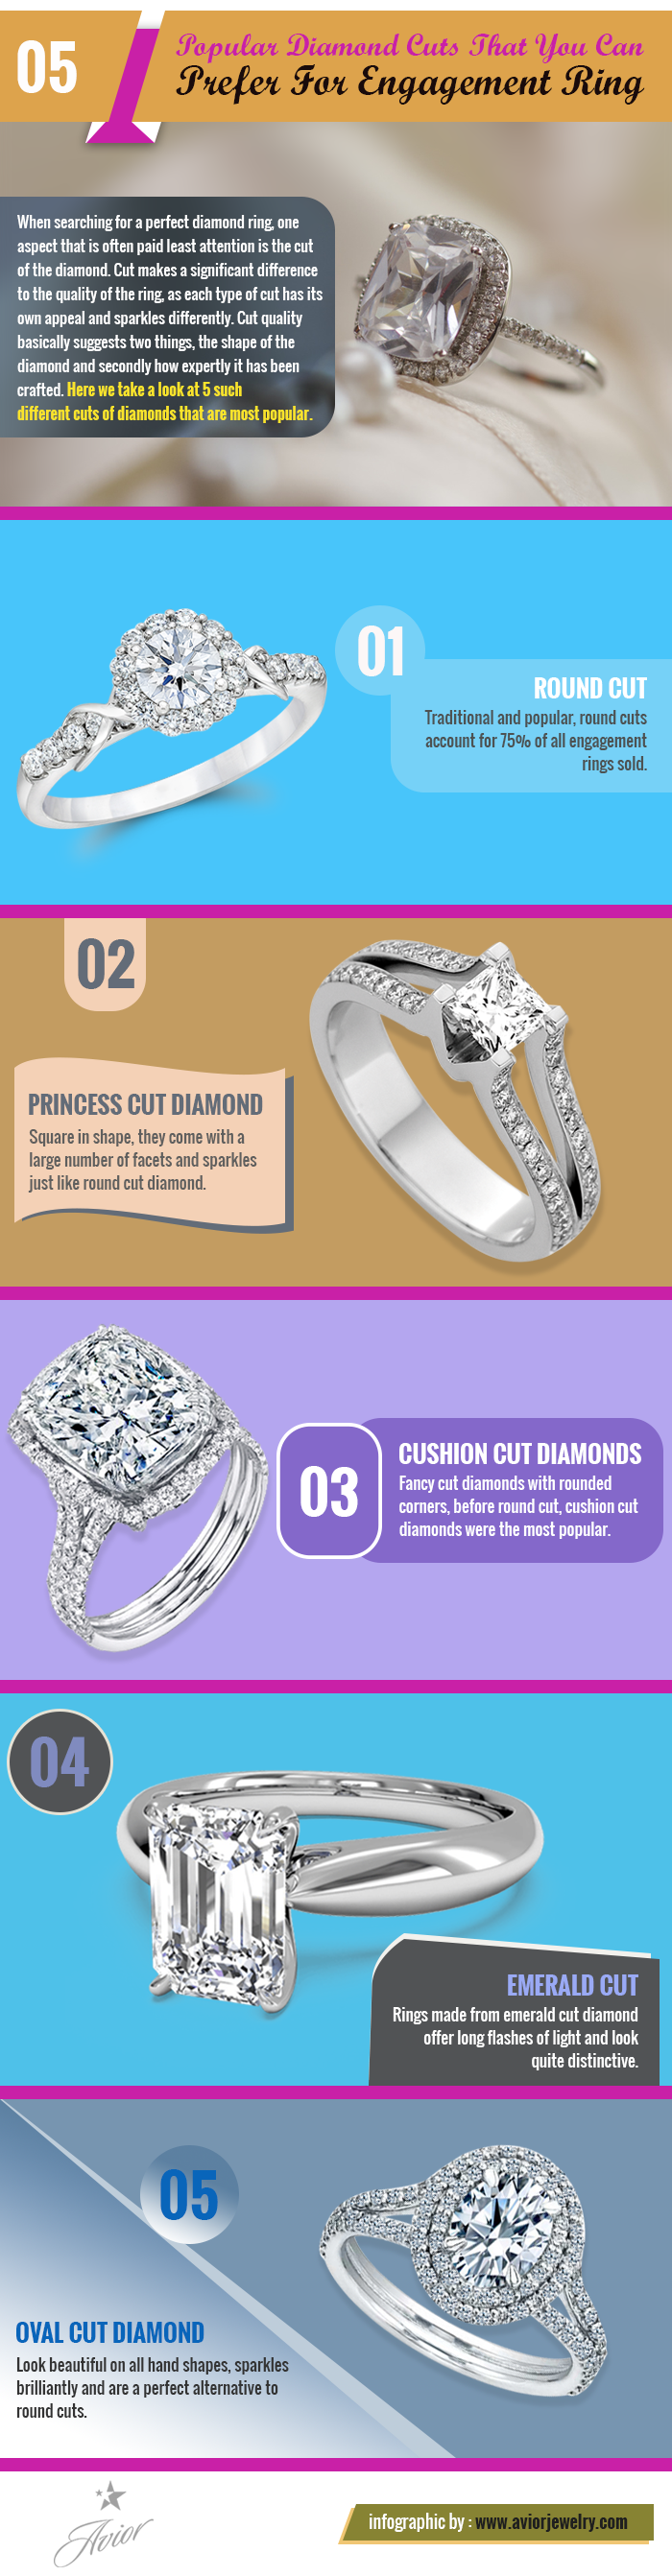 Unique diamond cuts which you can choose from for your engagement